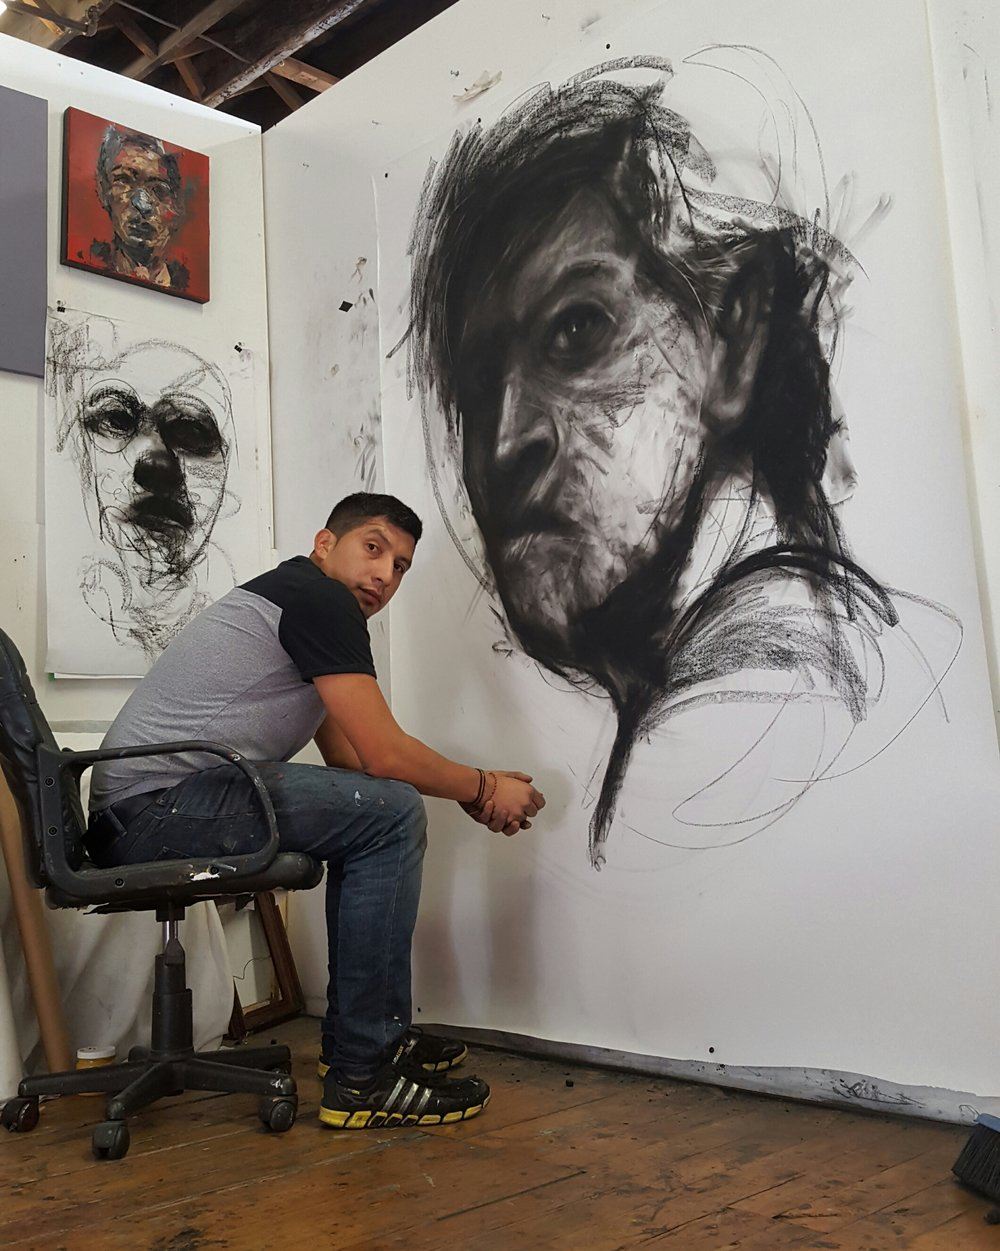 Large scale black and white drawing as part of a new series by Carlos Delgado.